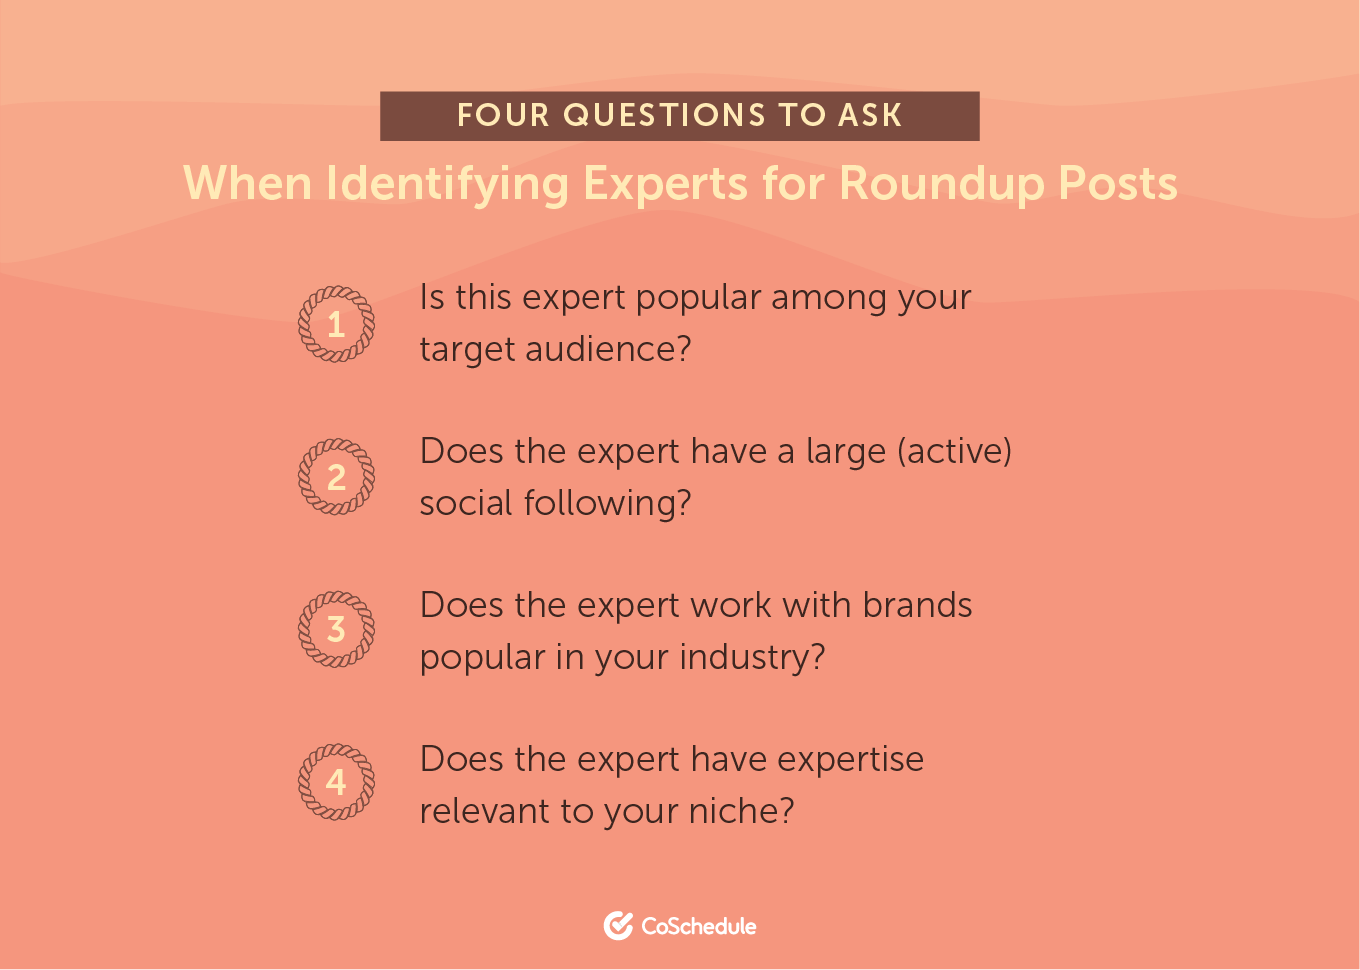 Four Questions to Ask When Identifying Experts for Roundup Posts